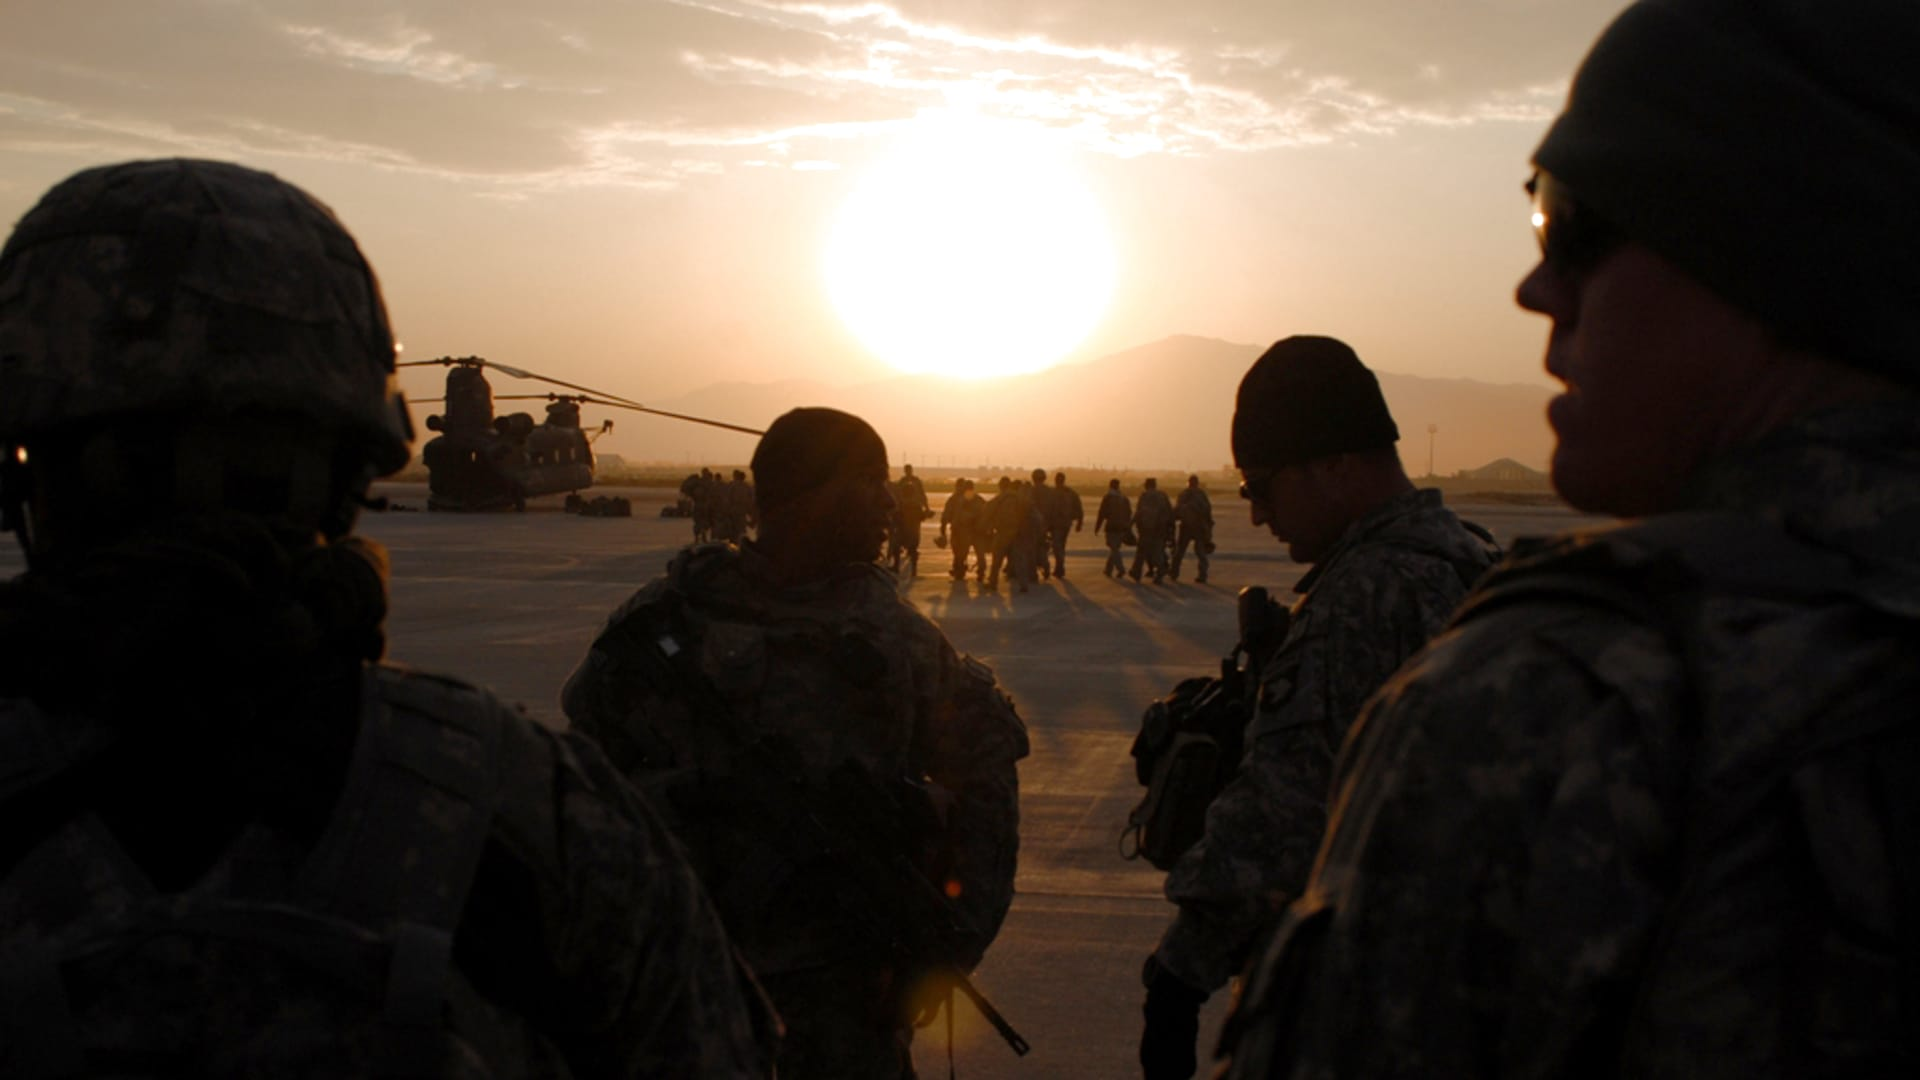 Soldiers from A Co., 101st Division Special Troop Battalion prepare to board a Chinook for an air assault mission Nov. 1, 2005 at Bagram Air Field, Afghanistan.